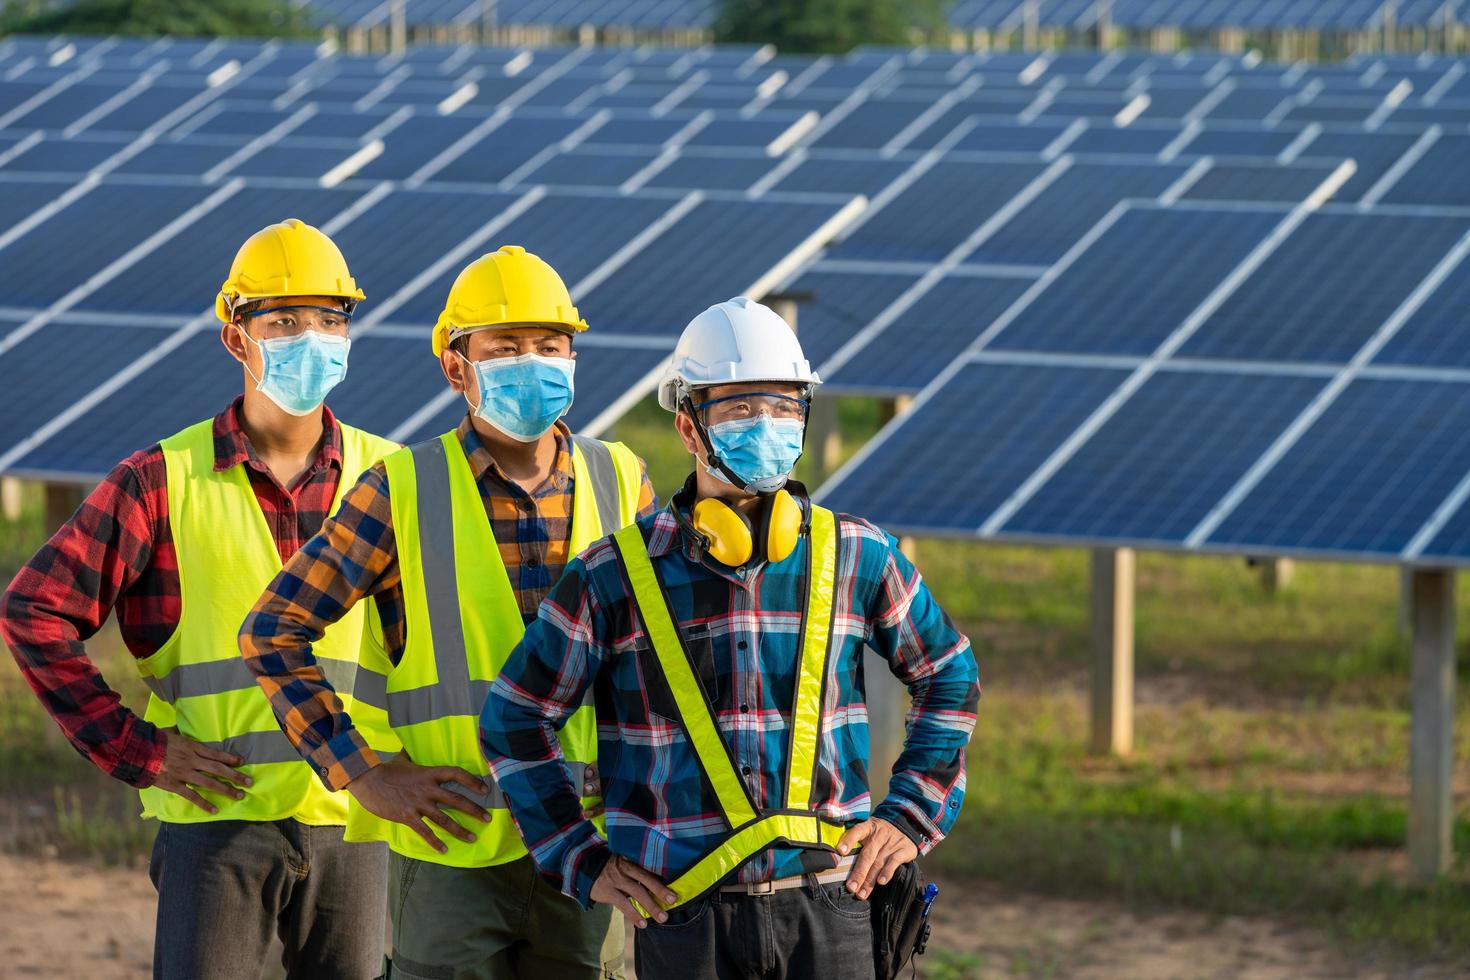 Masked workers next to solar panels photo